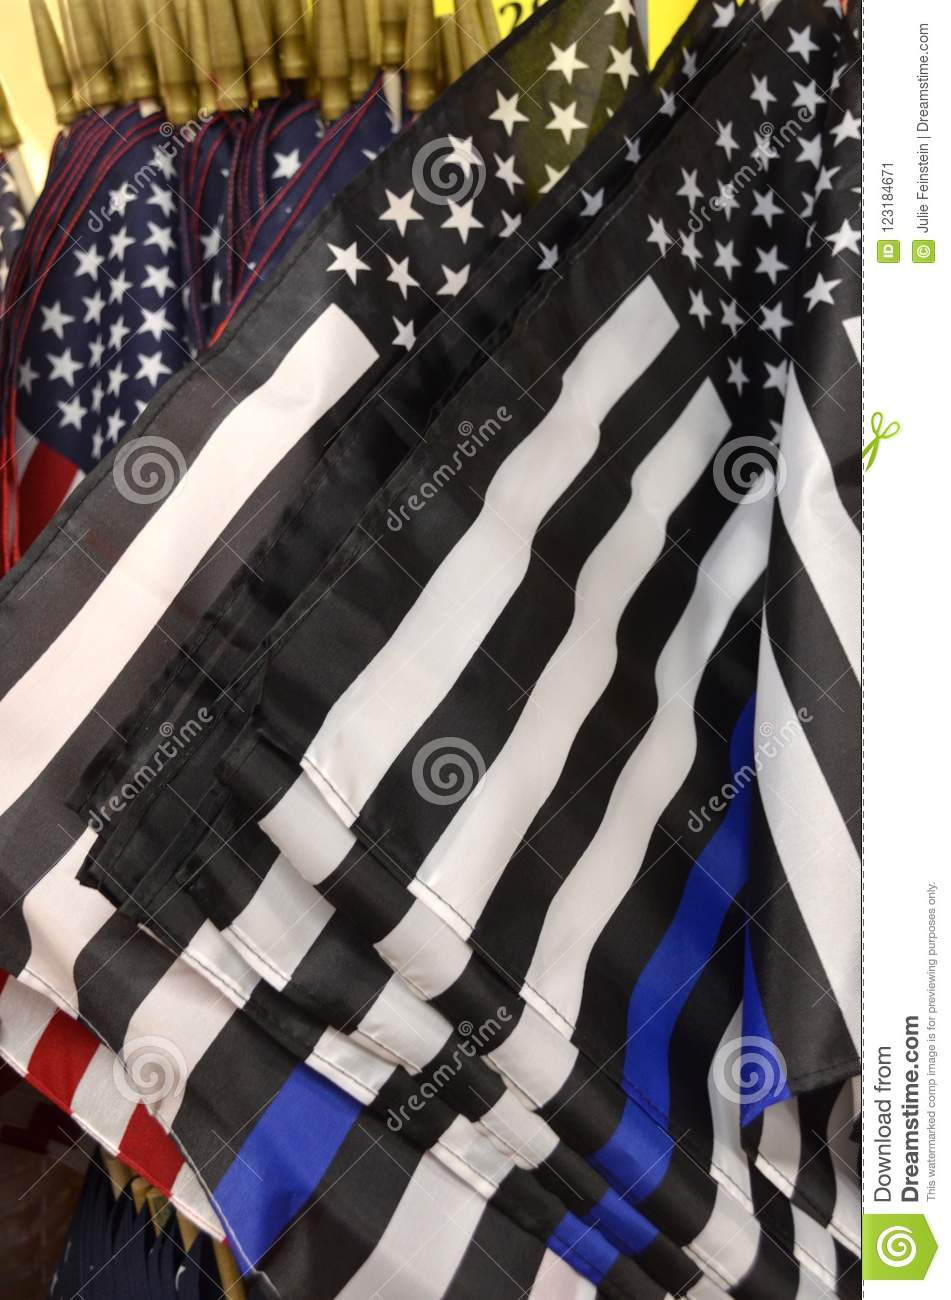 c78aa5c2f5f0 thin blue line flags american flags black white stripes one blue line  represent support law enforcement with black white and blue american flag